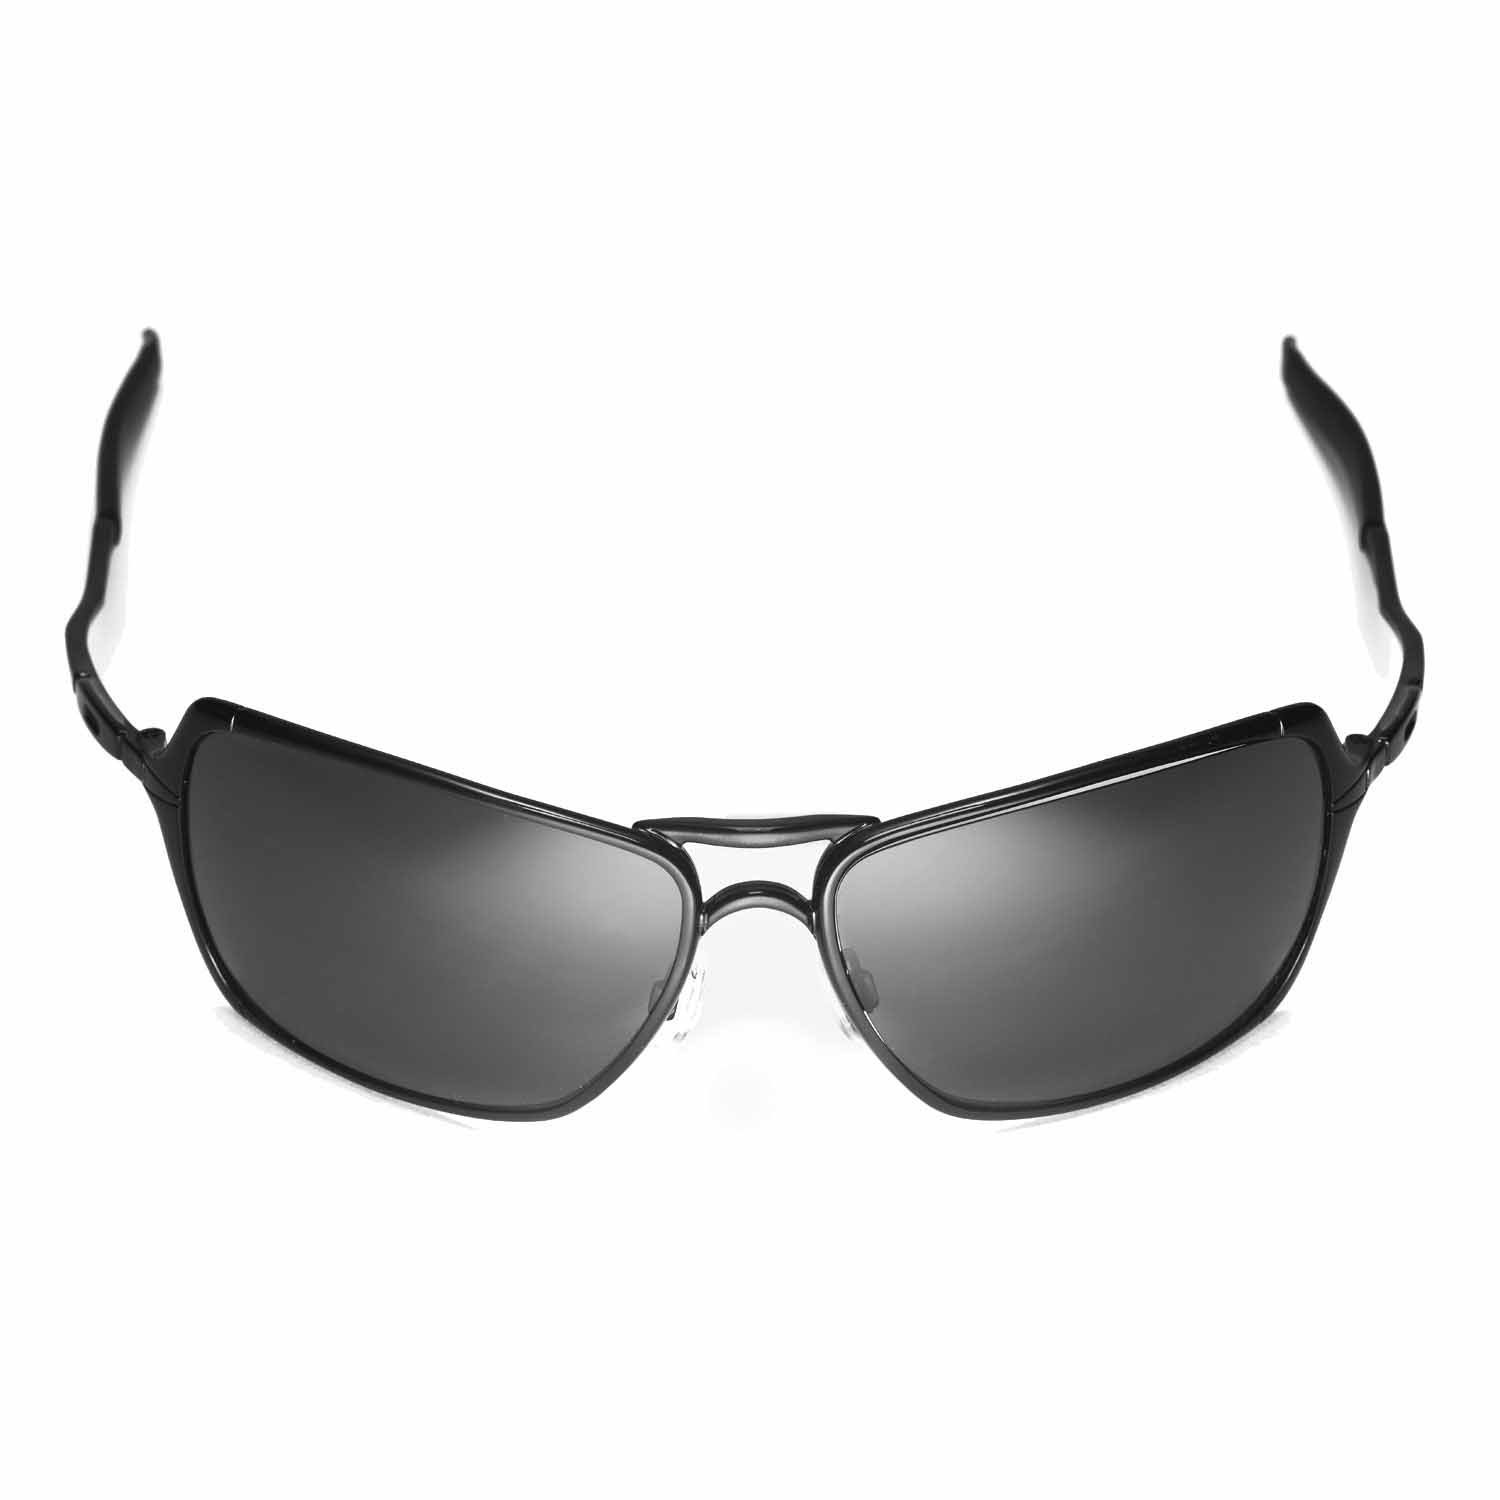 0e509b6bef Amazon.com  Walleva Replacement Lenses for Oakley Inmate Sunglasses -  Multiple Options Available (Black - Polarized)  Sports   Outdoors